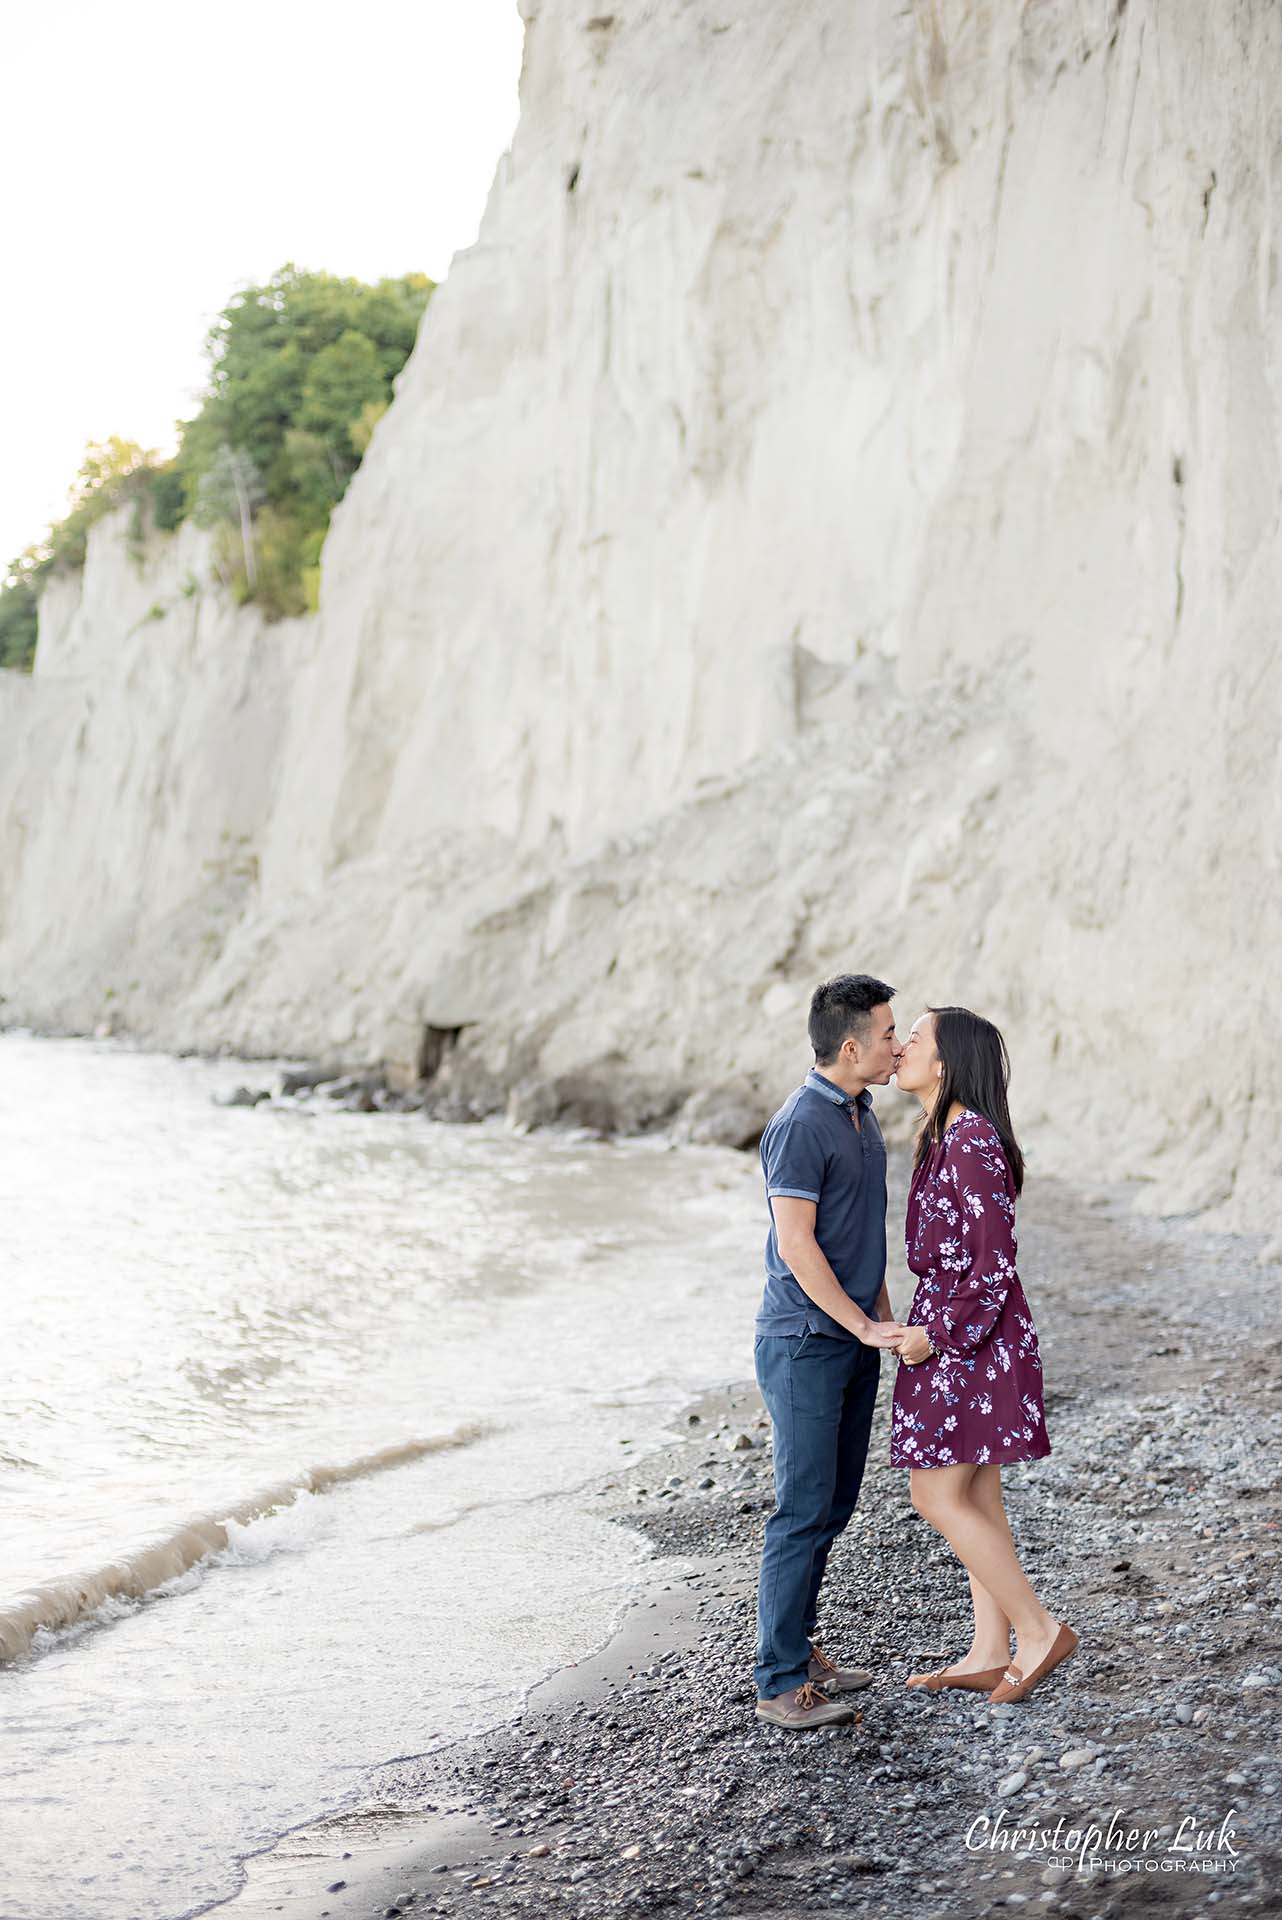 Christopher Luk Toronto Photographer Scarborough Bluffs Beach Park Sunset Surprise Wedding Marriage Engagement Proposal Candid Natural Photojournalistic Bride Groom Waterfront Water Lake Ontario Background Beachfront Sand Walking Together Holding Hands Edge of Water Smile Stone Portrait Kiss